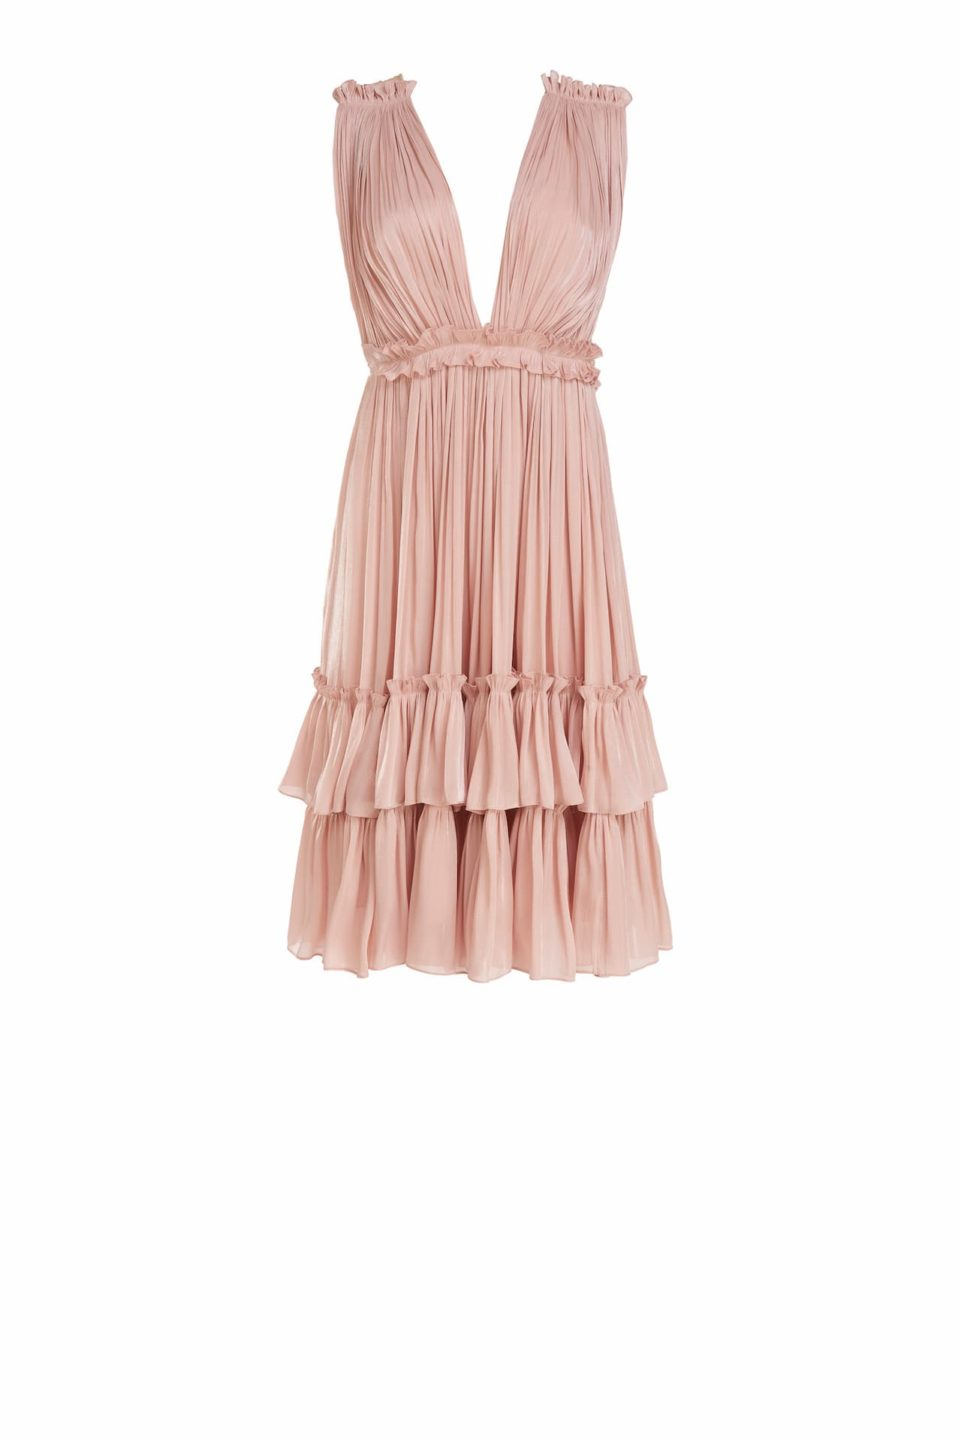 Roslyn SS2143 Pink Iridescent Lurex Georgette Flounce Dress with Plunging neckline and ruffle detail